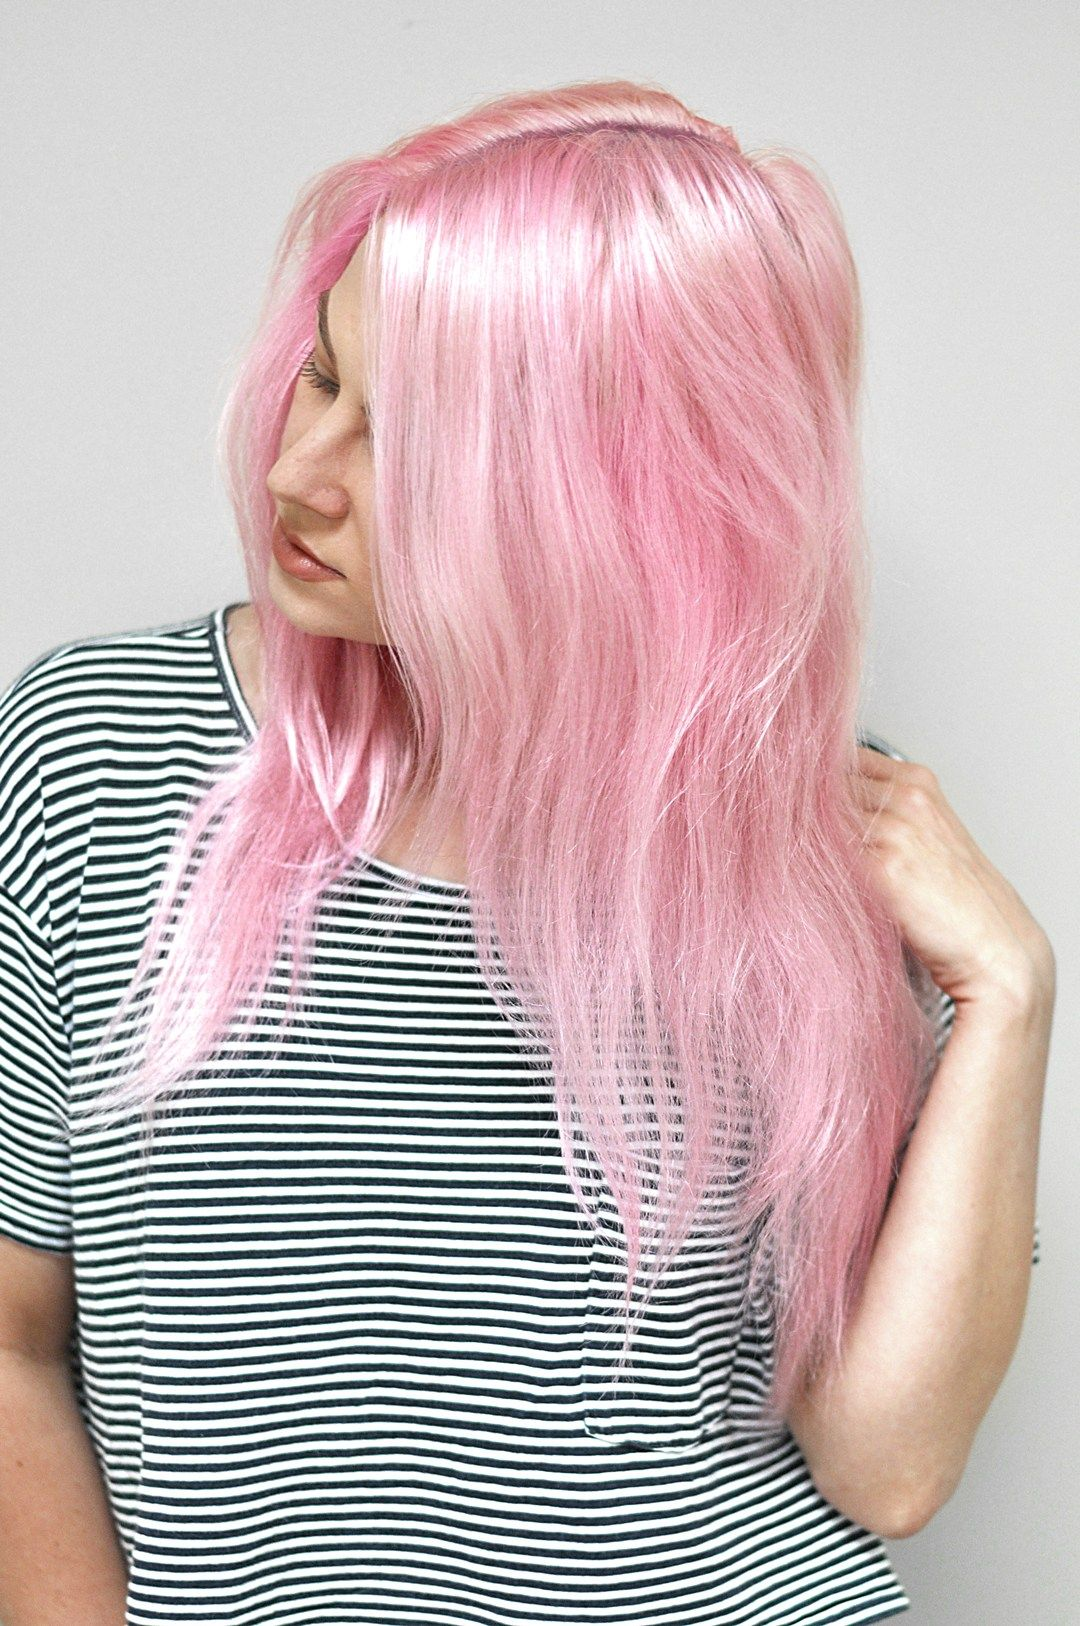 How To Keep Pastel Pink Hair From Fading For Good Mayalamode Pastel Pink Hair Pastel Pink Hair Color Pink Hair